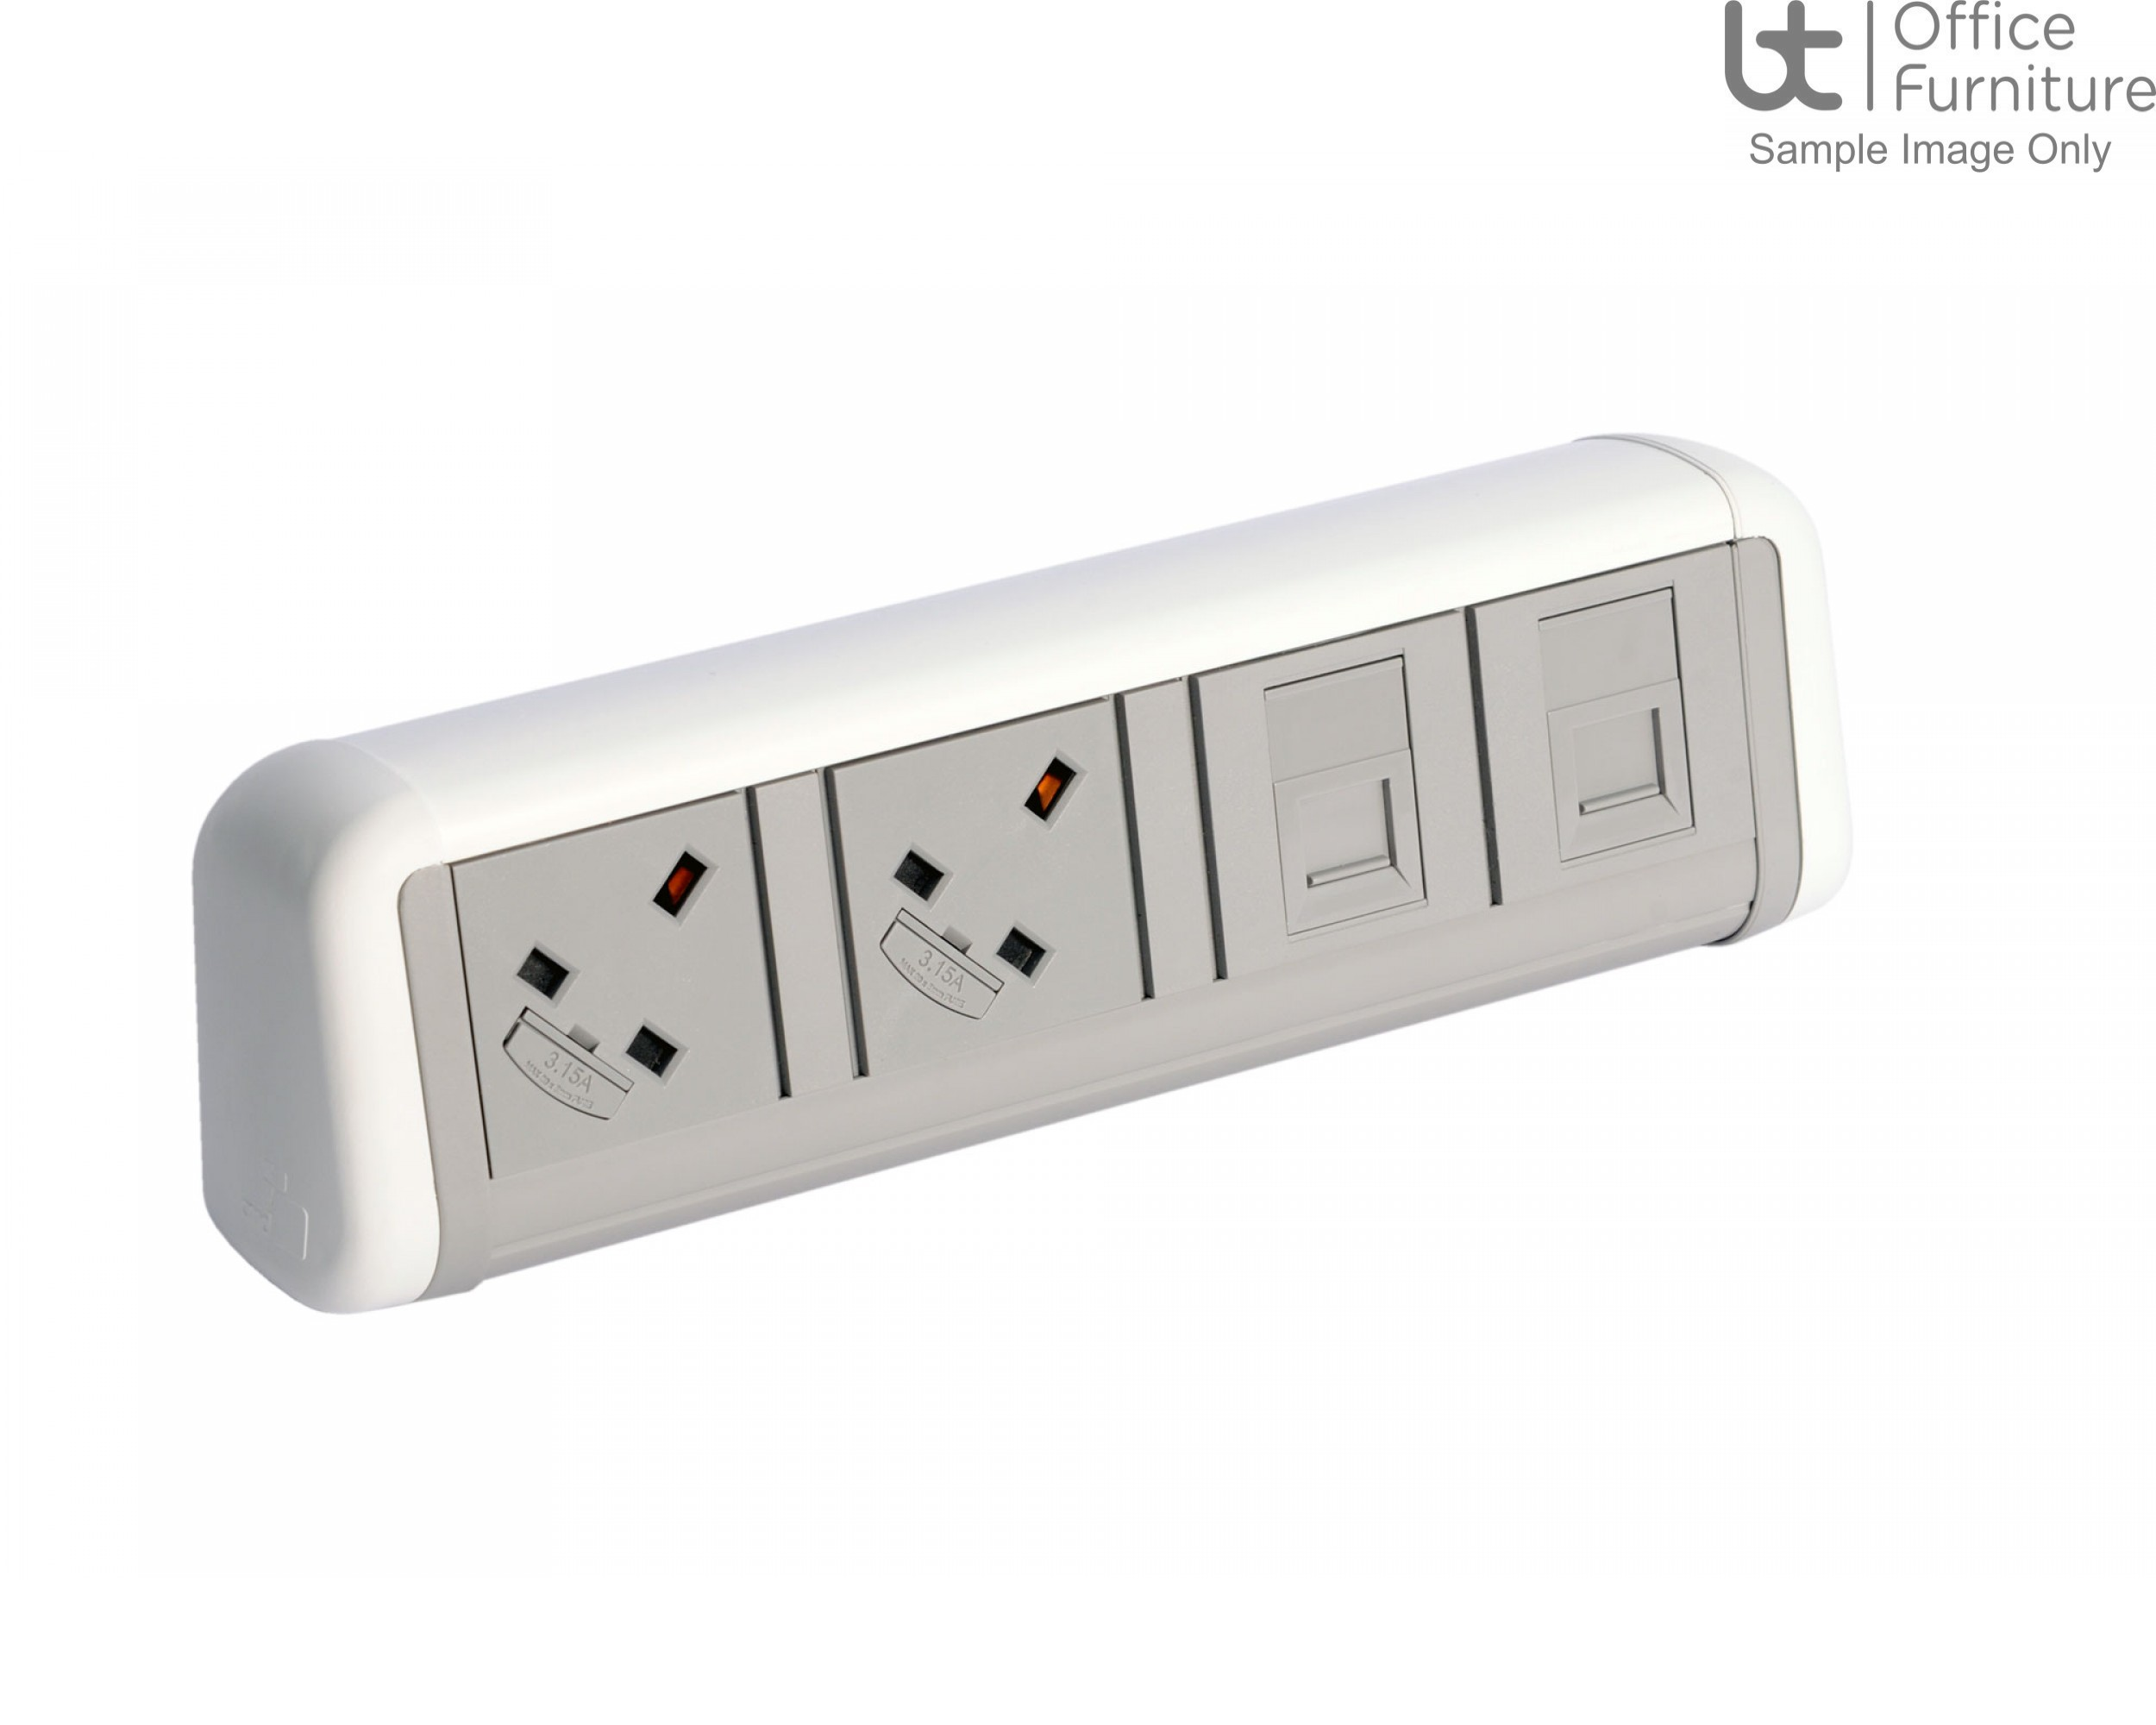 Contour 2 x power, 1m mains lead to 3-pole connector, 2 x RJ45 data Cat6 sockets only